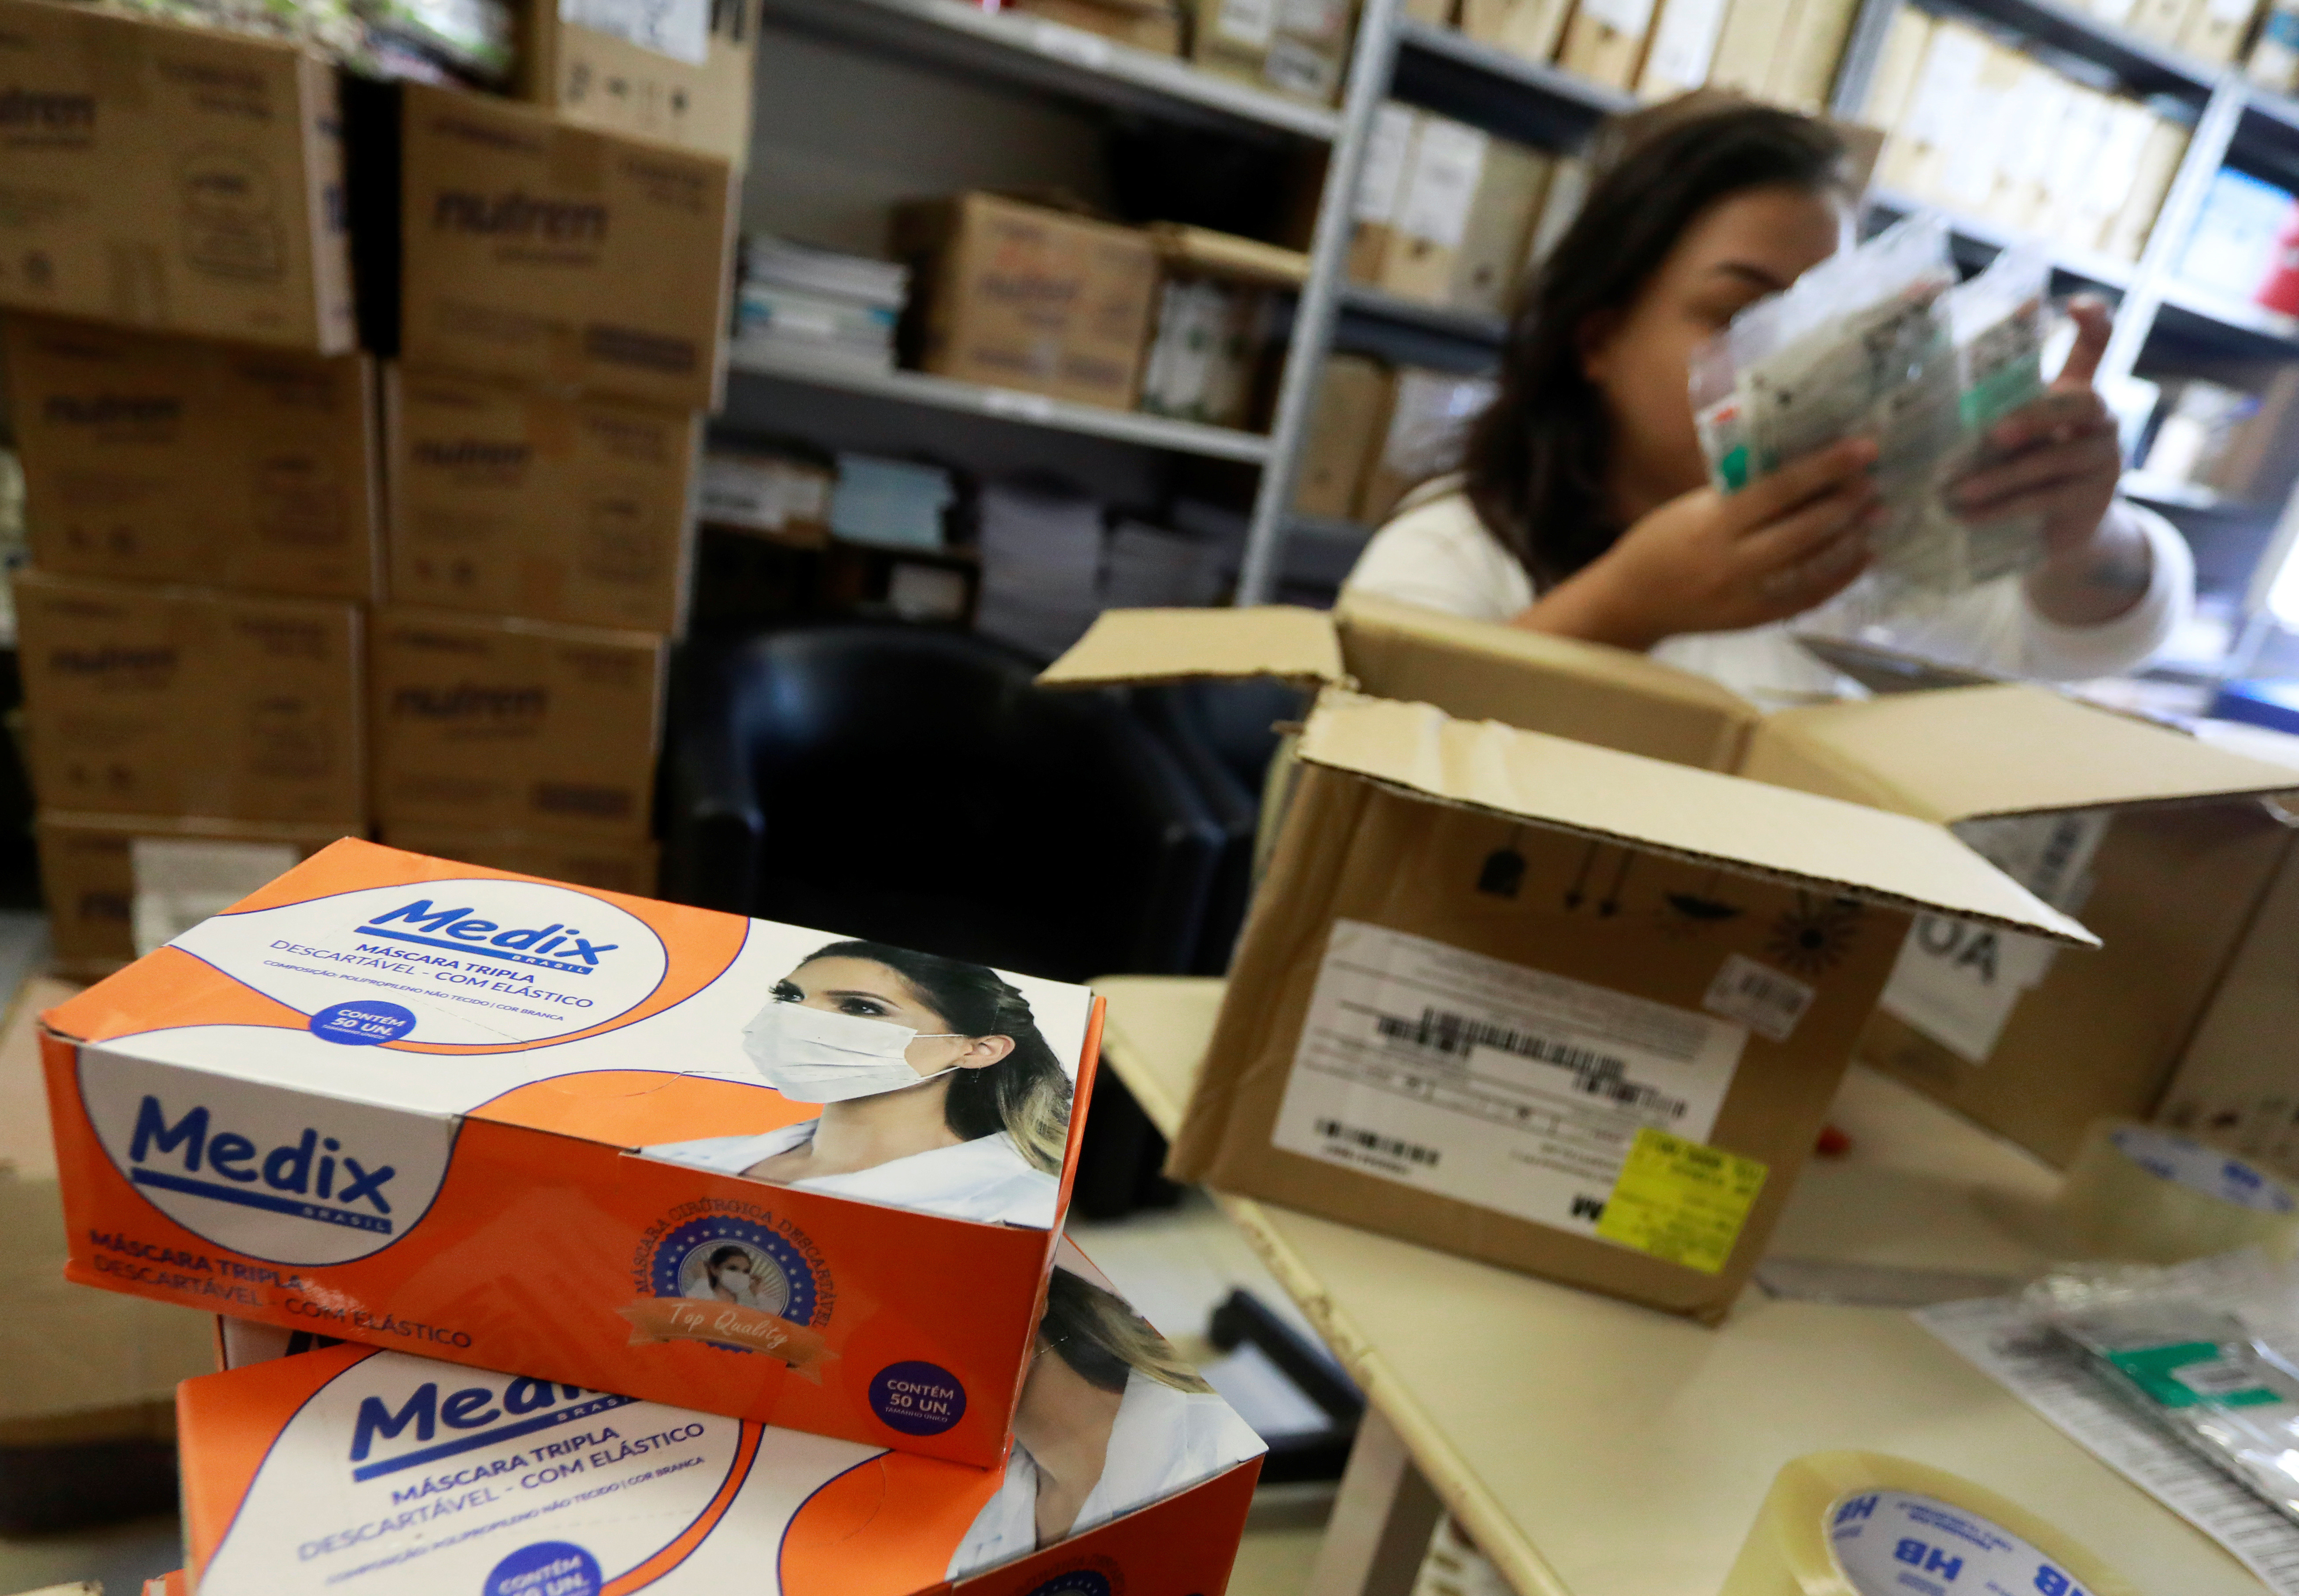 An employee packs medical masks, that are part of personal protection and survival equipment kits ordered by customers preparing against novel coronavirus, at a centre of an express delivery company in Porto Alegre, Brazil February 28, 2020. REUTERS/Diego Vara - RC2T9F9ZY8W4